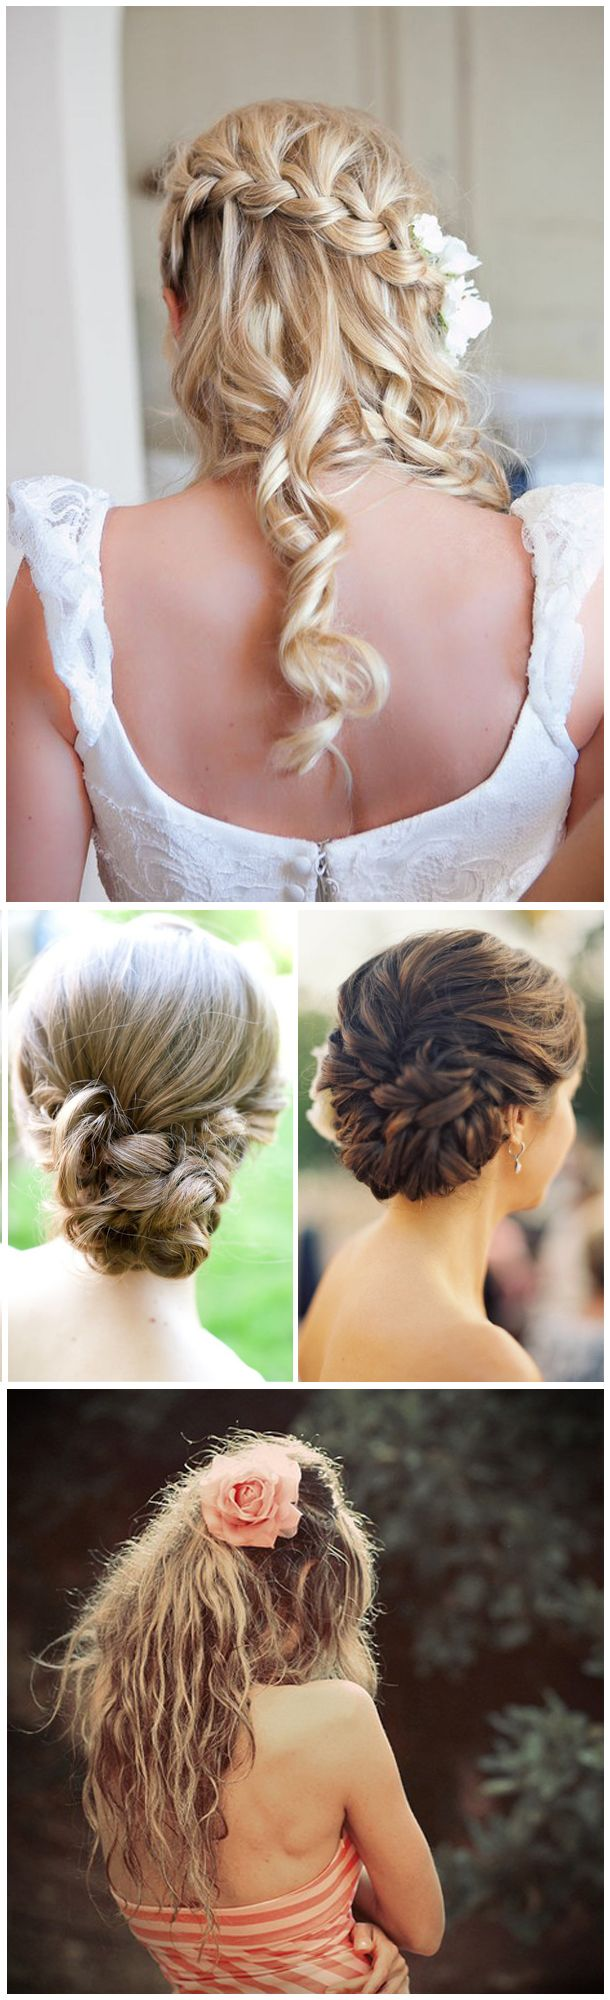 Imperfect hairstyles